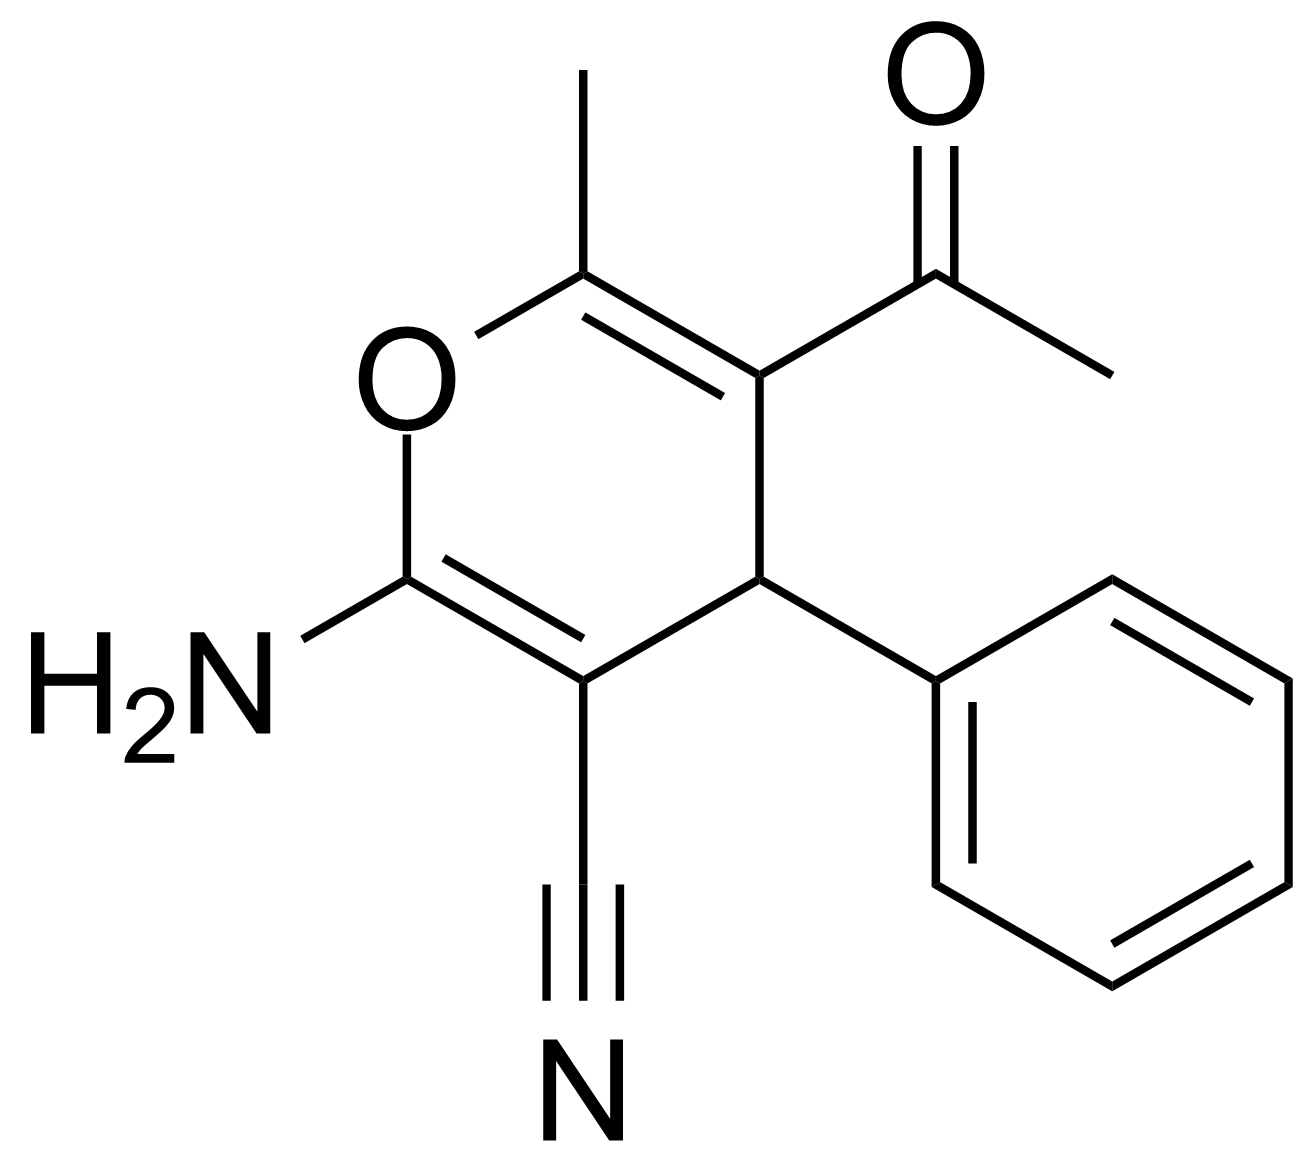 Structure of 5-Acetyl-2-amino-6-methyl-4-phenyl-4H-pyran-3-carbonitrile